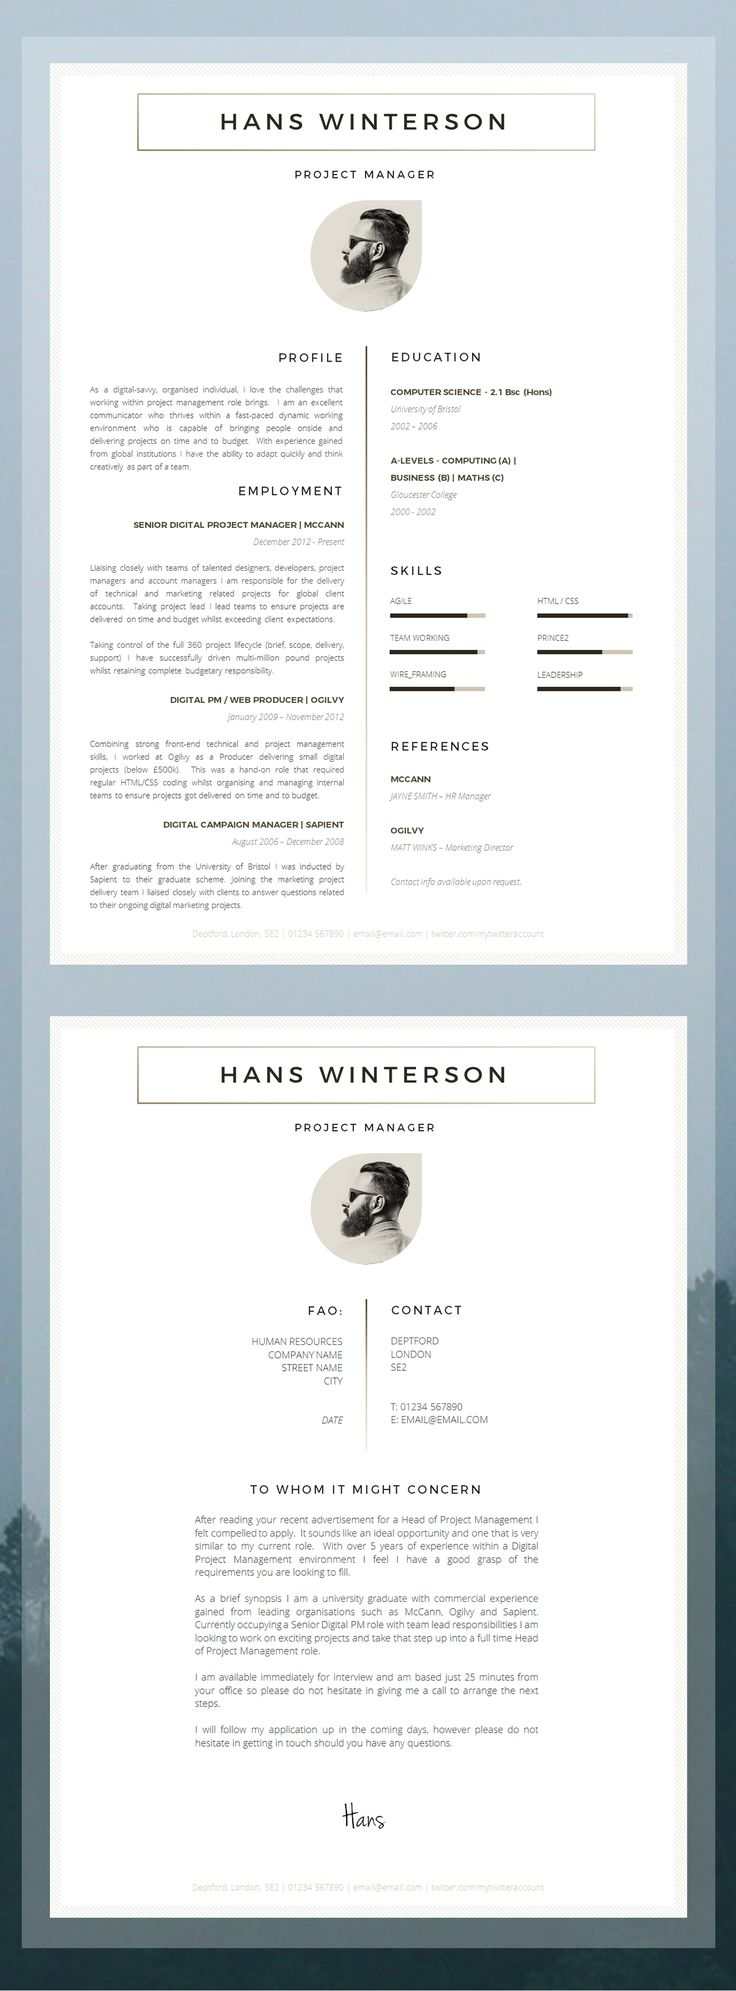 First Impressions Count - Modern CV Design